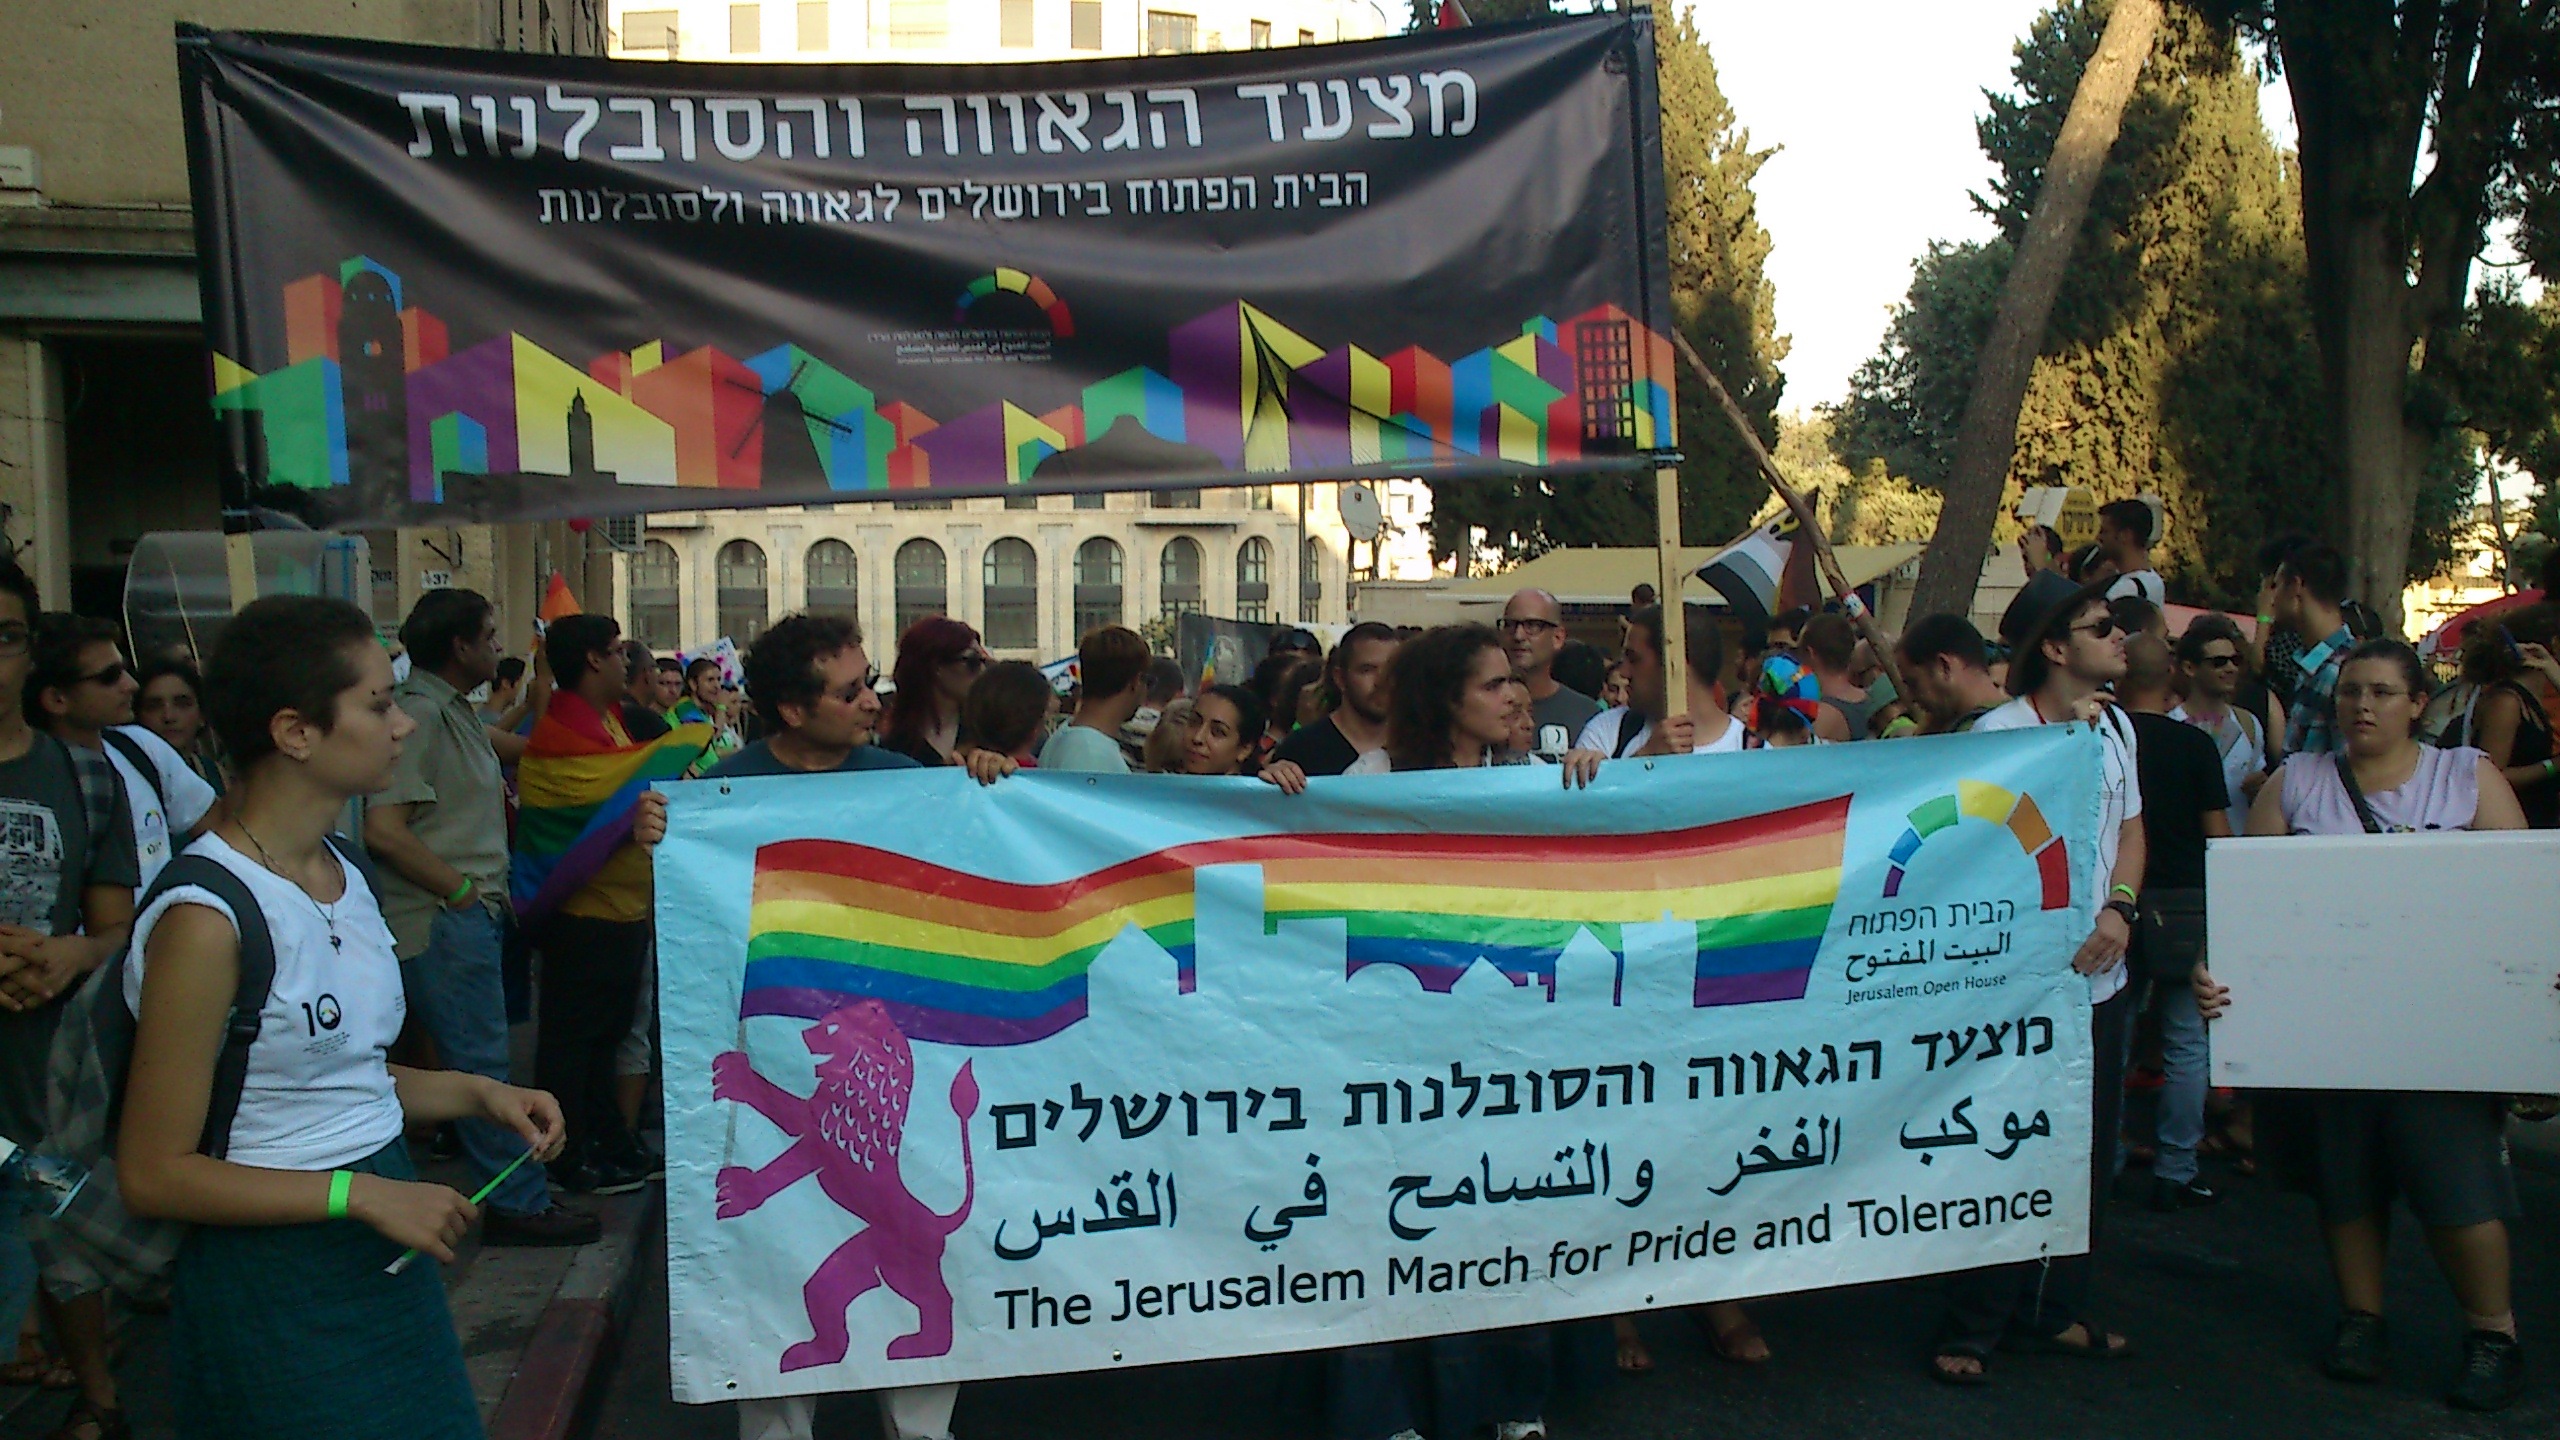 Photos from today's Jerusalem Gay Pride Parade